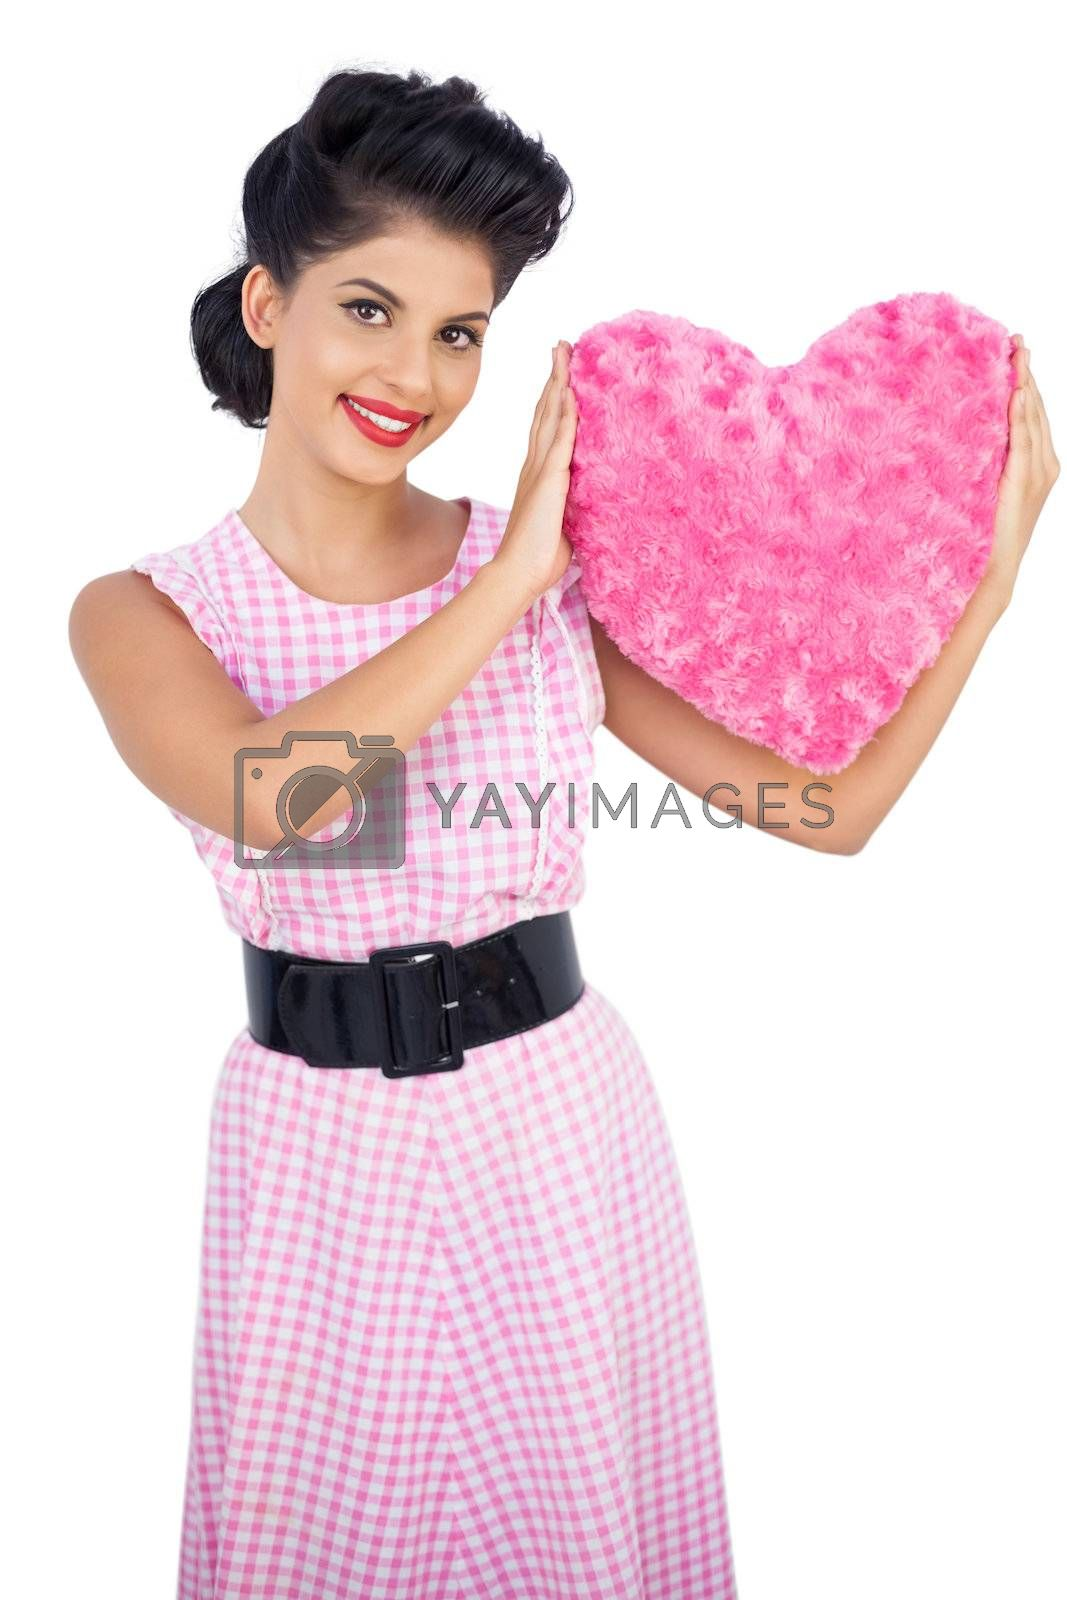 Playful black hair model holding a pink heart shaped pillow by Wavebreakmedia